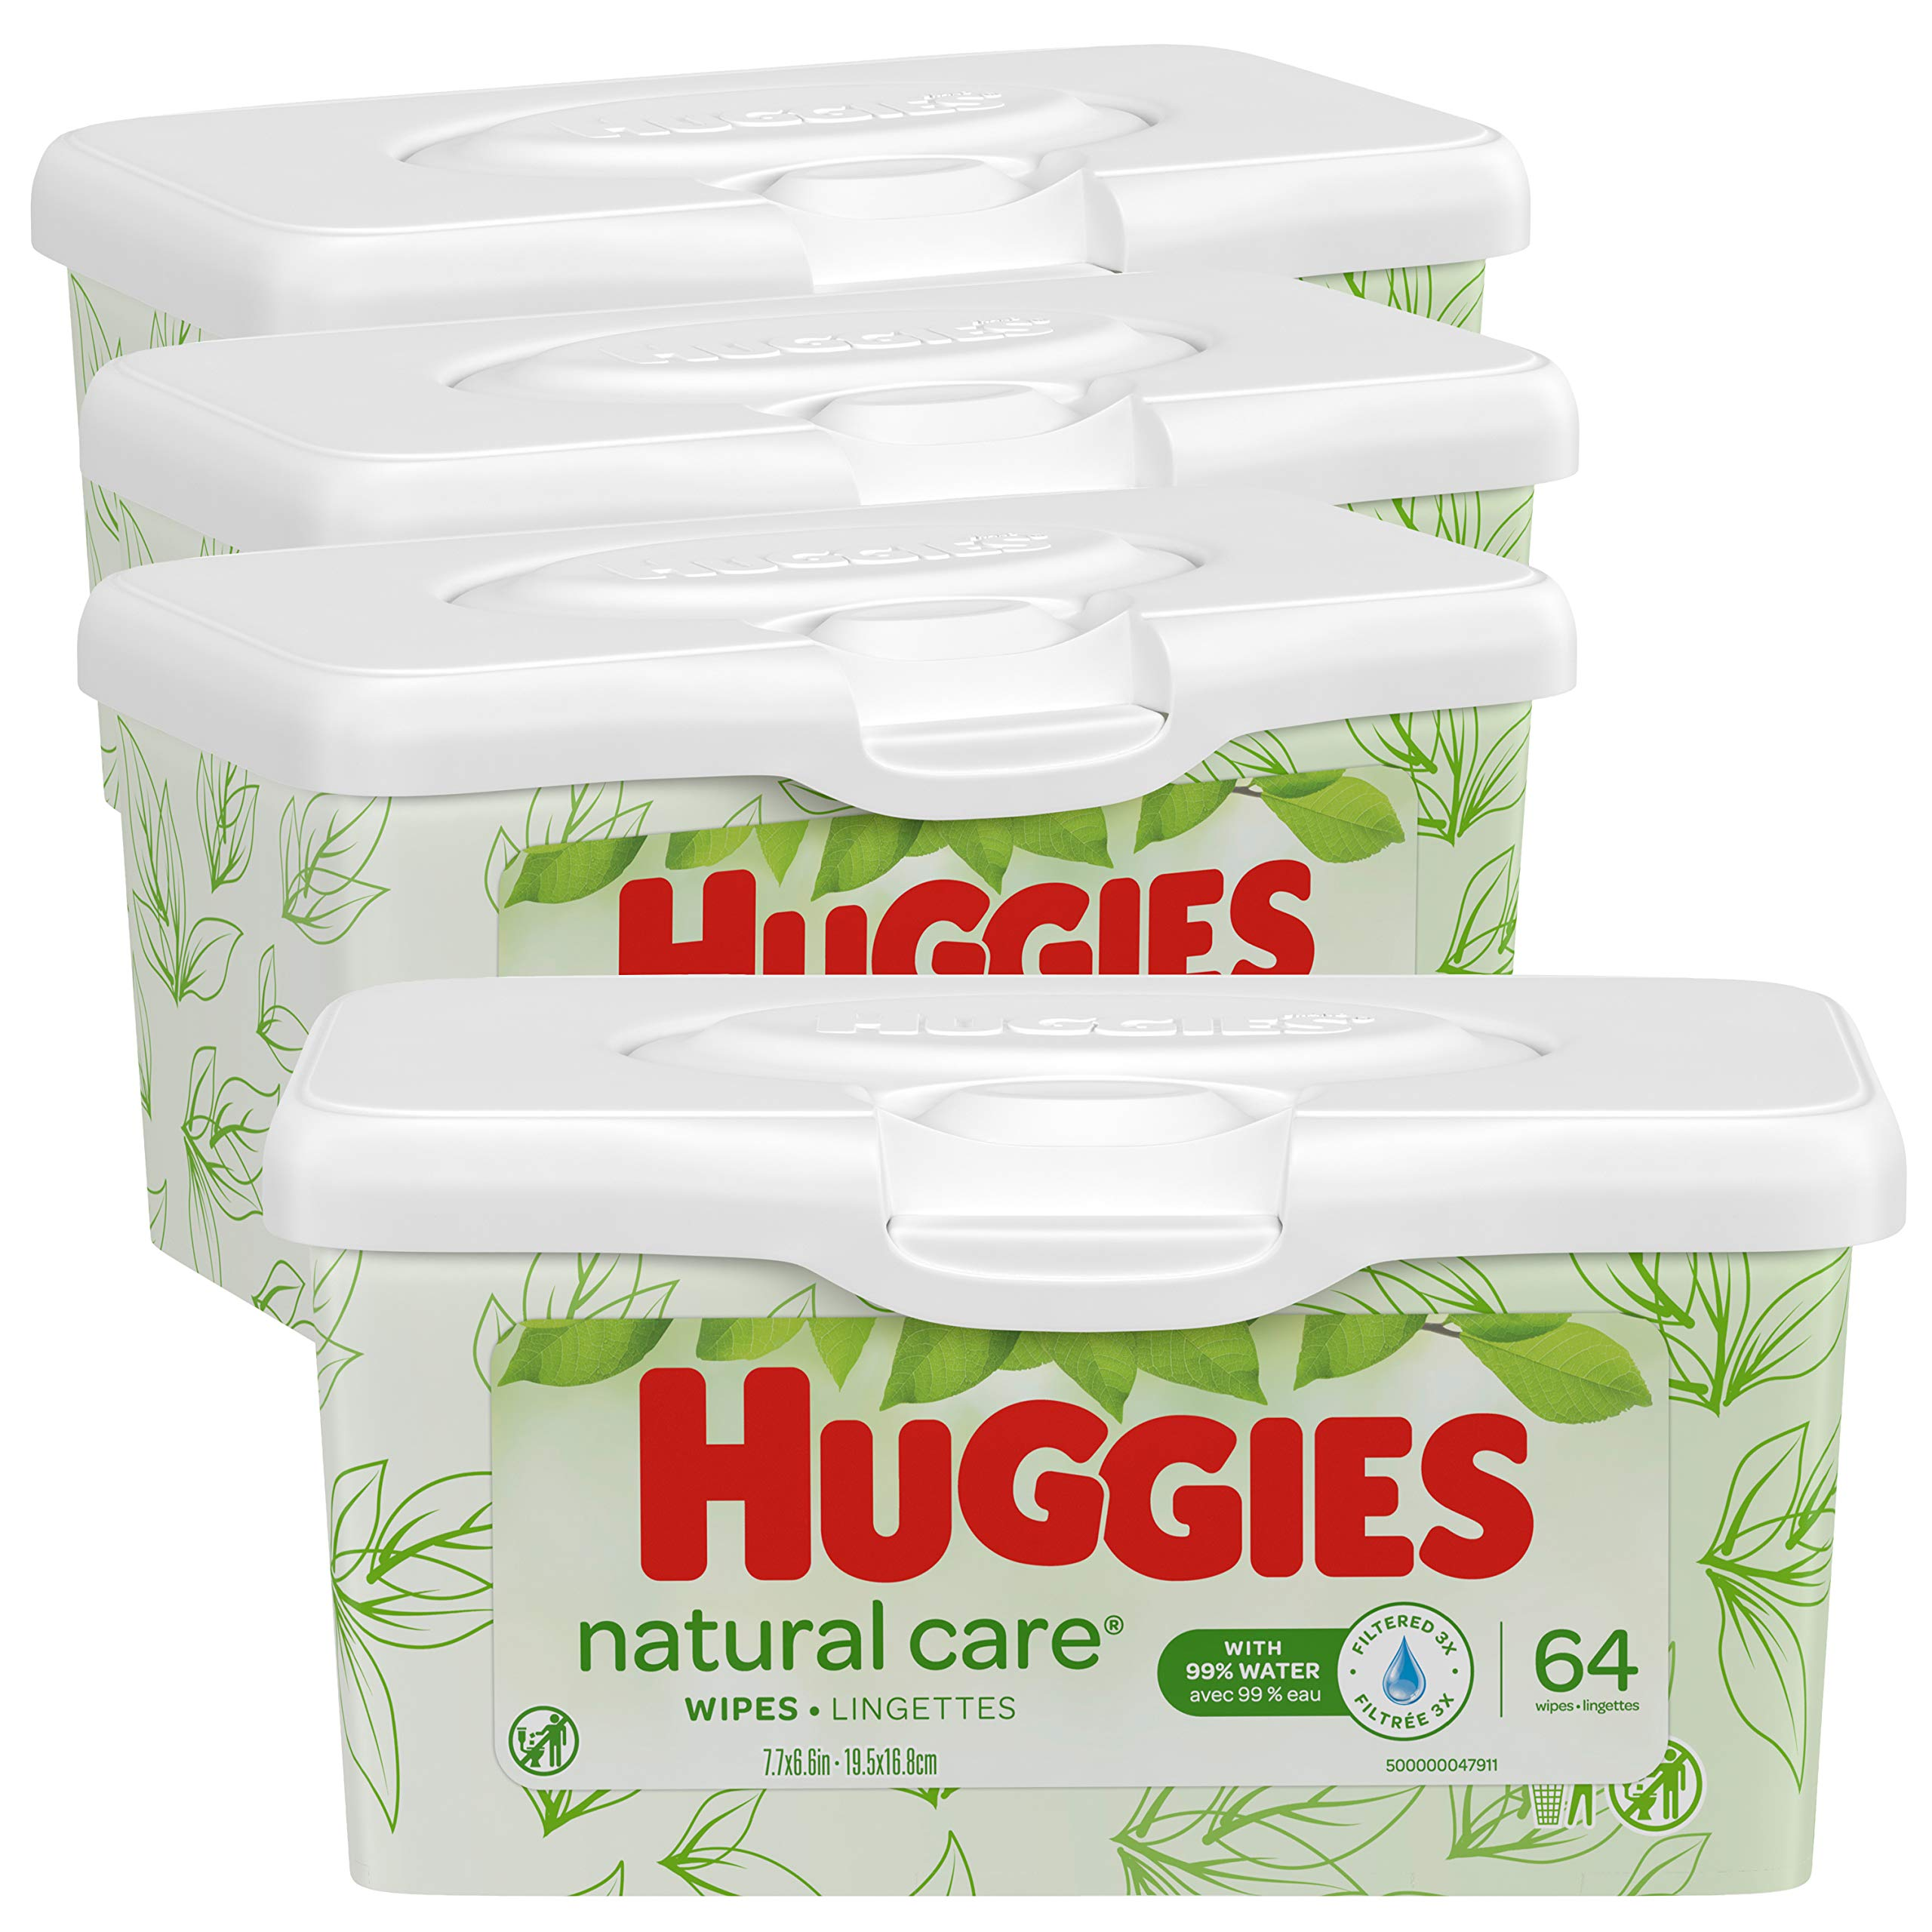 HUGGIES Natural Care Unscented Baby Wipes, Sensitive, 4 Refillable Tubs, 64 Wipes per Tub, 256 Wipes Total by HUGGIES